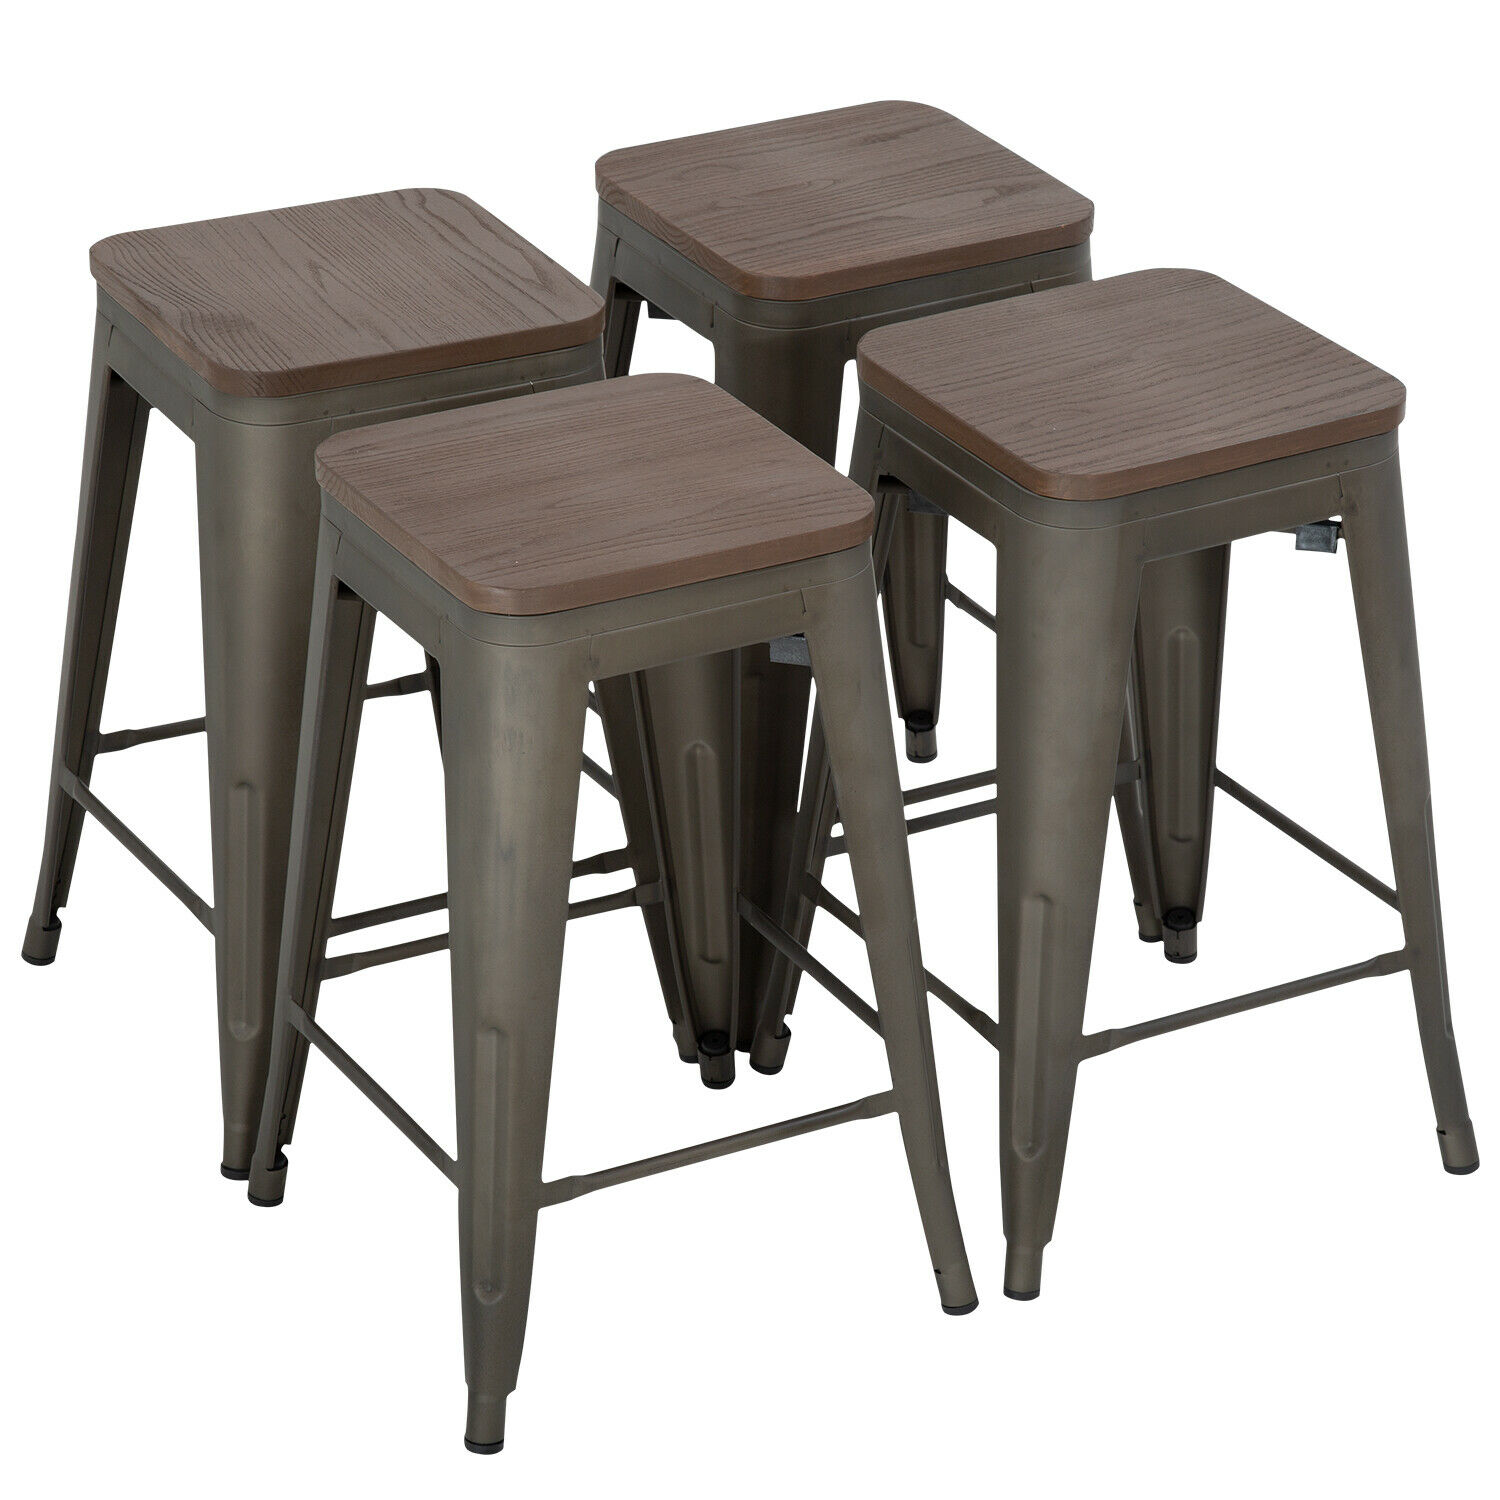 Metal Bar Stools Set Of 4 Counter Height Wood Seat Barstool 24 Inches Industrial Benches, Stools & Bar Stools